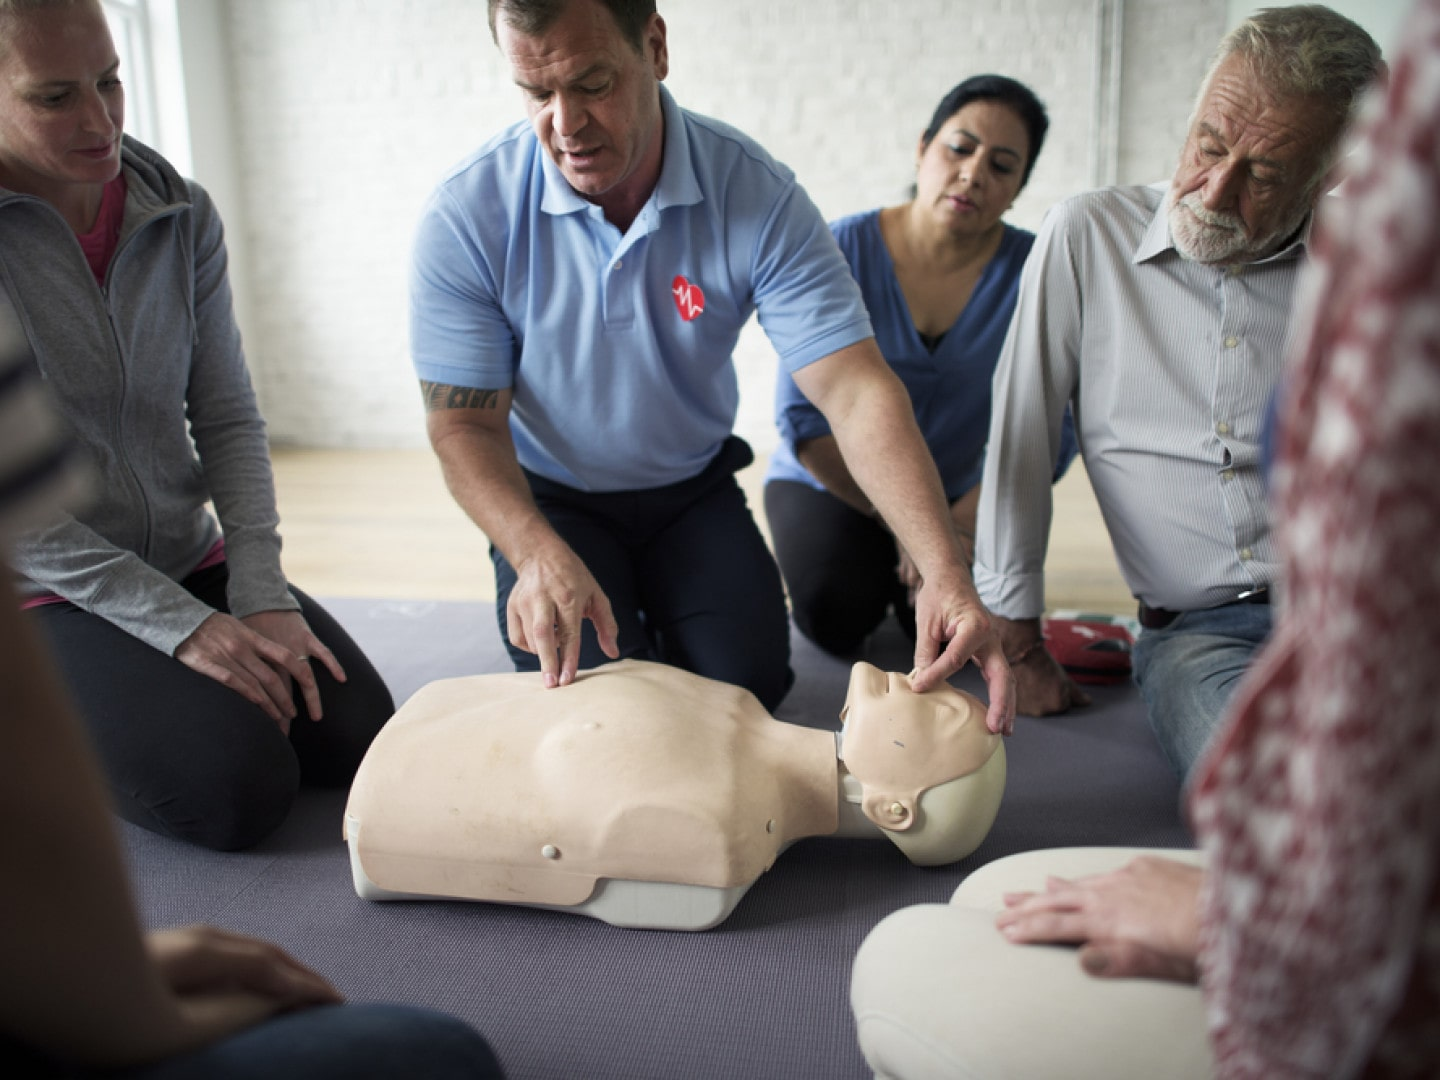 TAKE YOUR CPR TRAINING ONE STEP FURTHER